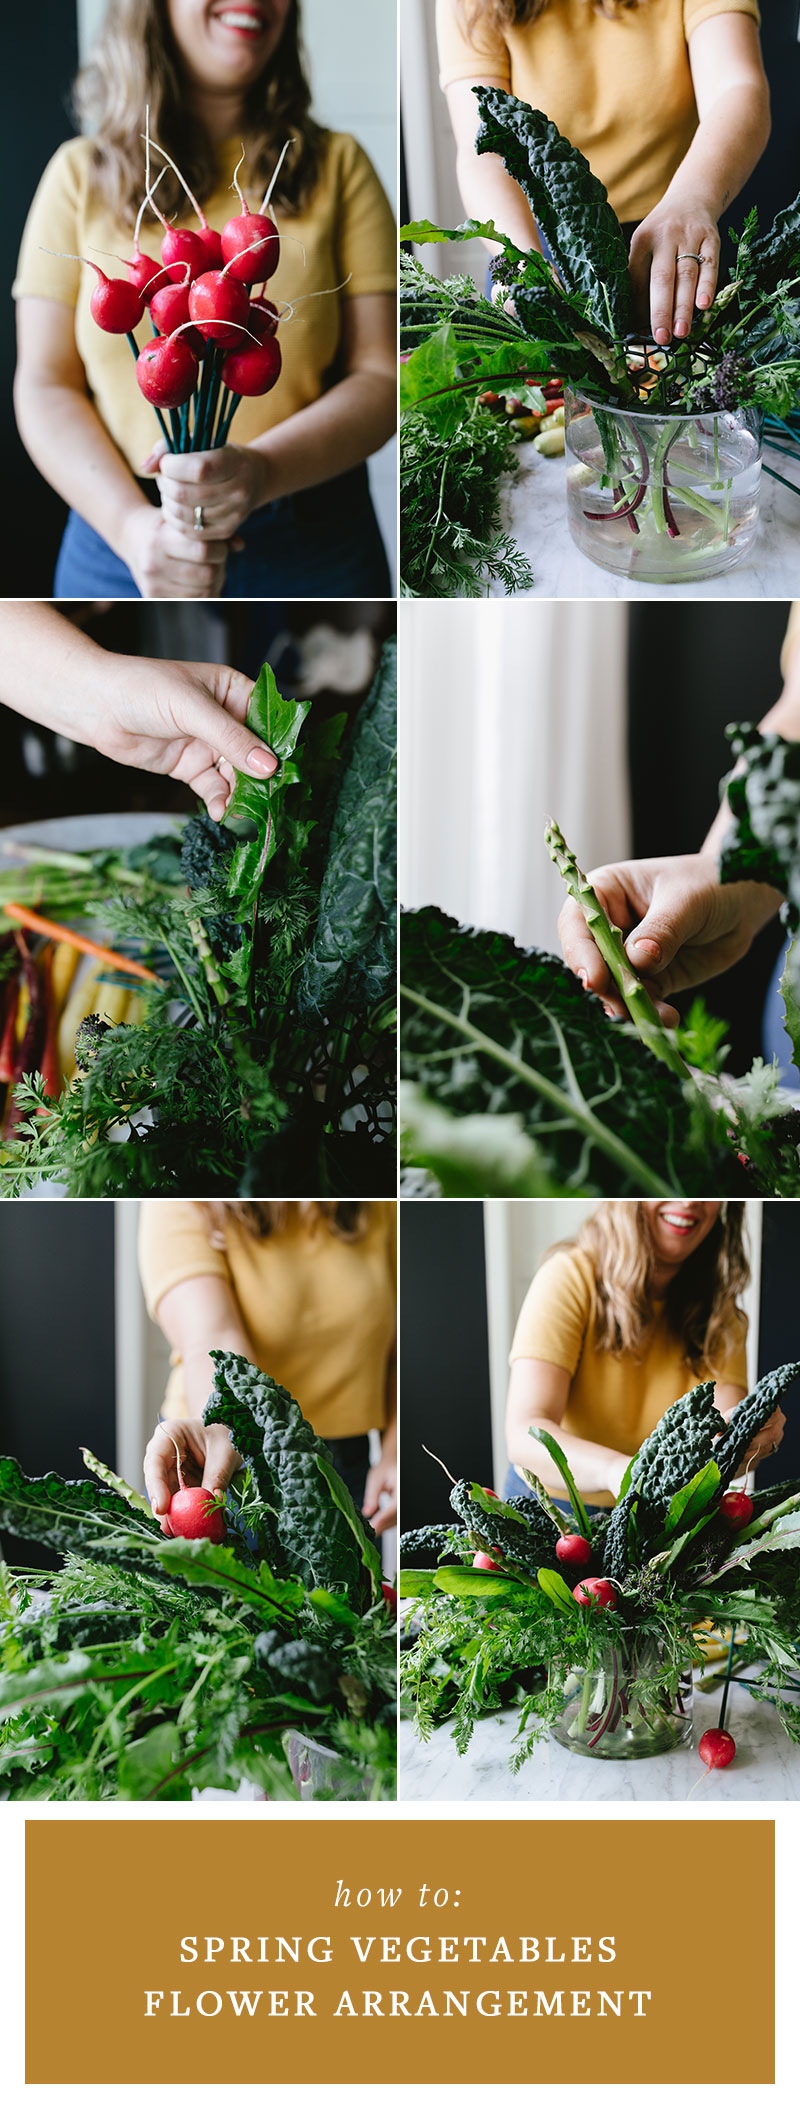 Learn how to make a textural, dramatic centerpiece with spring vegetables! This unexpected flower arrangement is a fun addition to any kitchen or Bloody Mary brunch. Perfect for Easter, Mother's Day, or a weekend brunch! #tablescape #spring #springtime #mothersday #easter #centerpiece #springvegetables #veggies #modernflowers